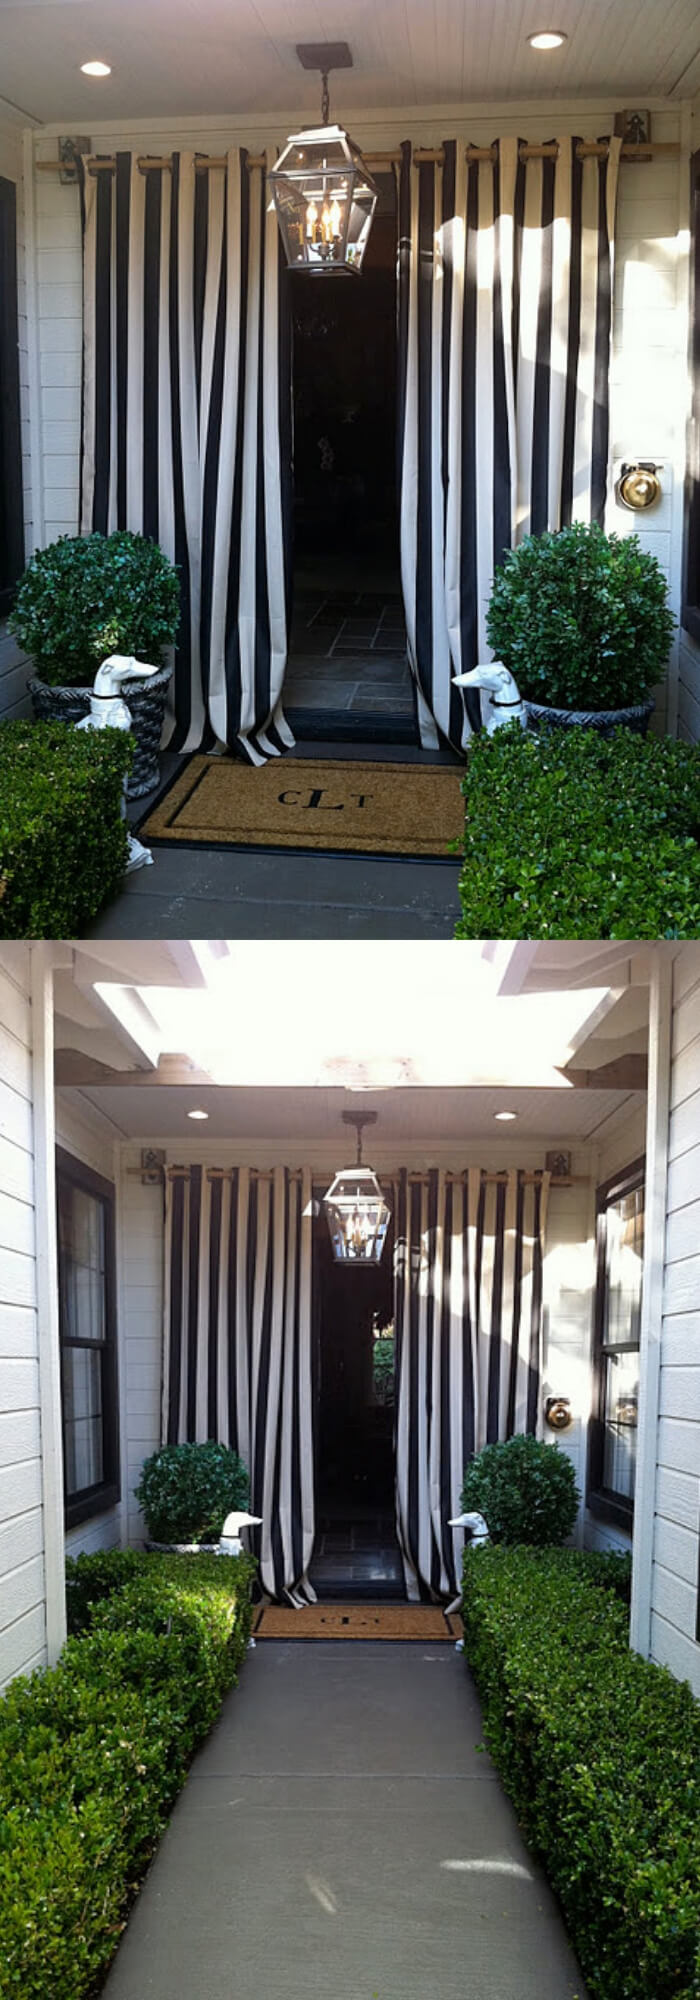 Black and white canopy stripes